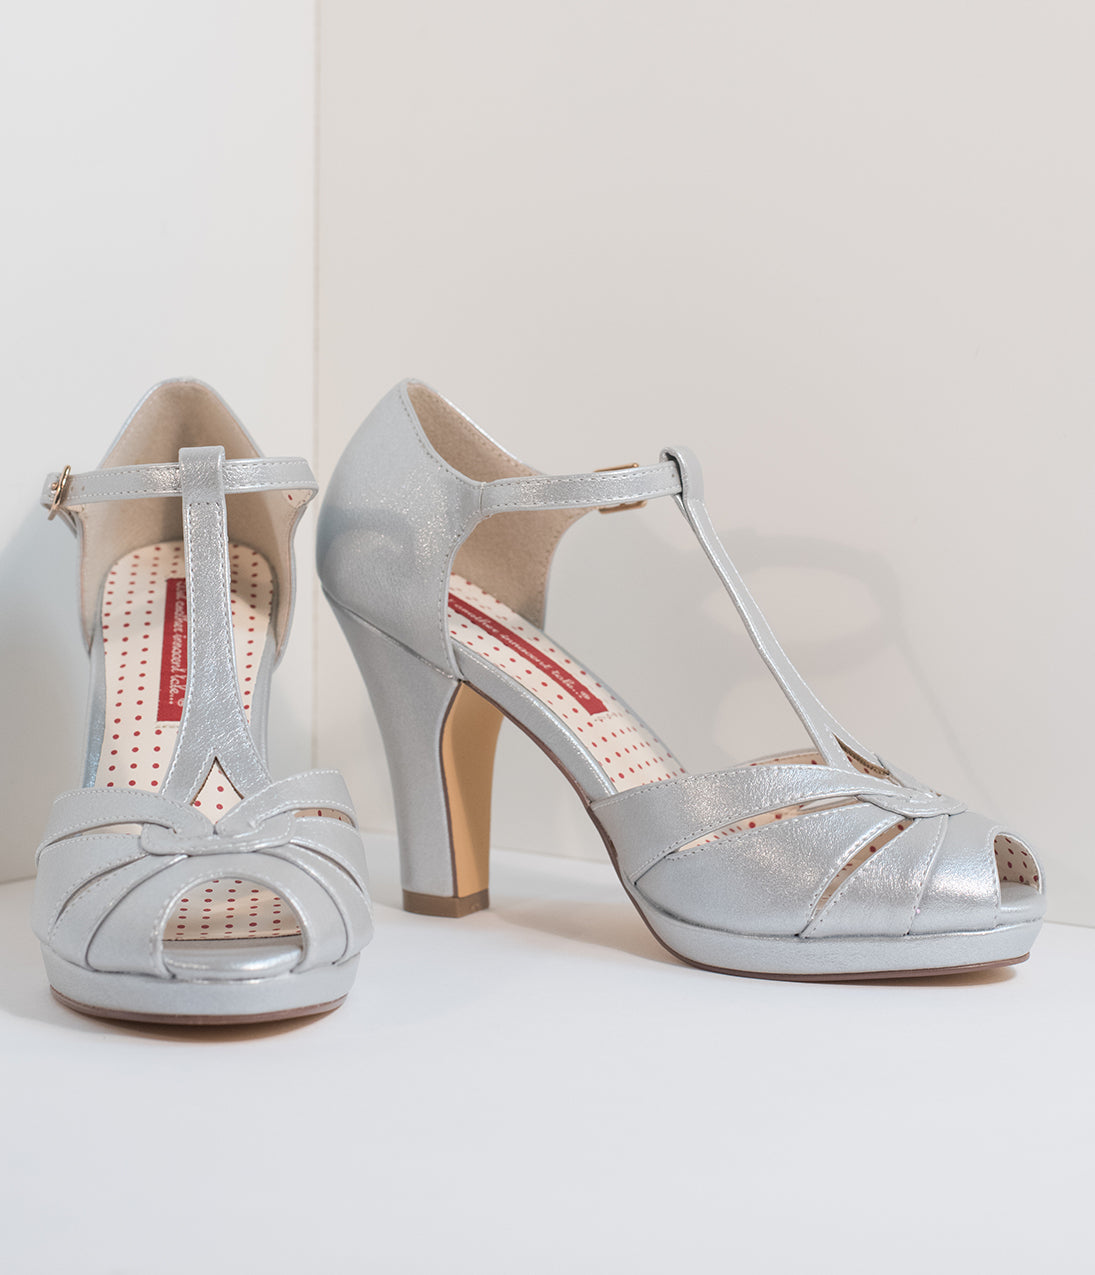 1940s Style Shoes, 40s Shoes B.a.i.t. Silver Pearl Patent Leatherette Peep Toe T-Strap Lacey Heels $76.00 AT vintagedancer.com